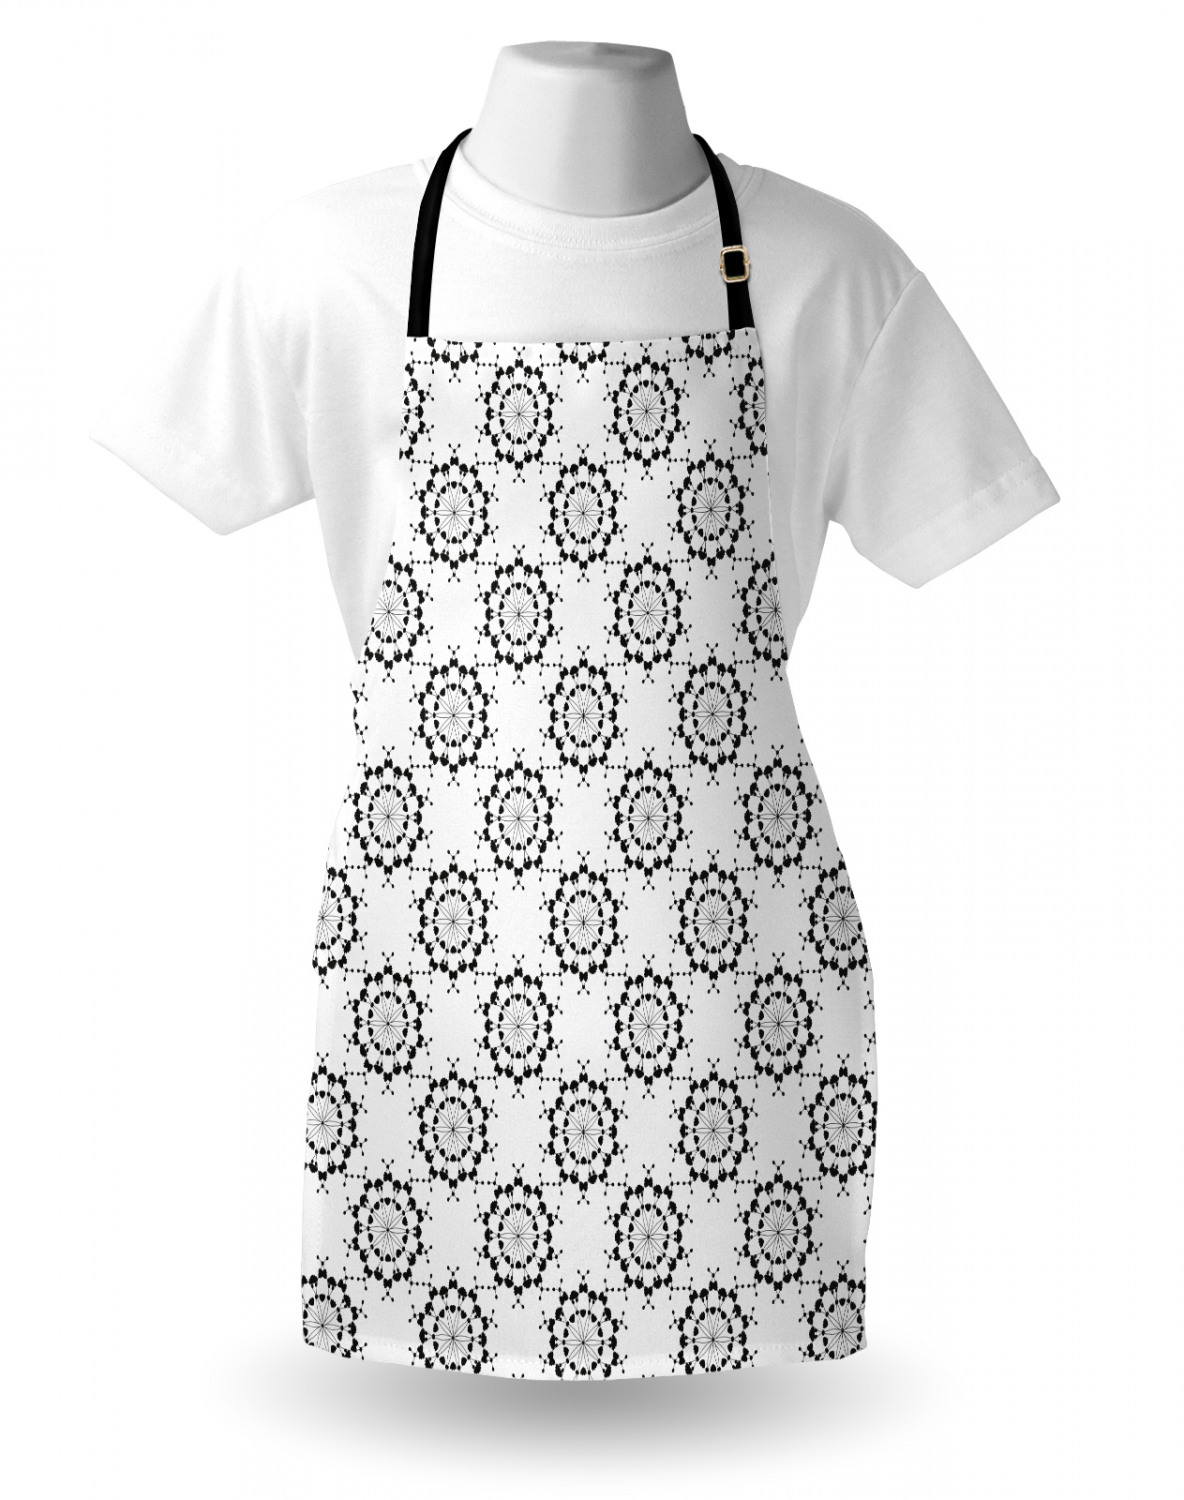 Ambesonne-Outdoor-Use-Apron-with-Adjustable-Neck-Strap-for-Gardening-and-Cooking miniatura 162